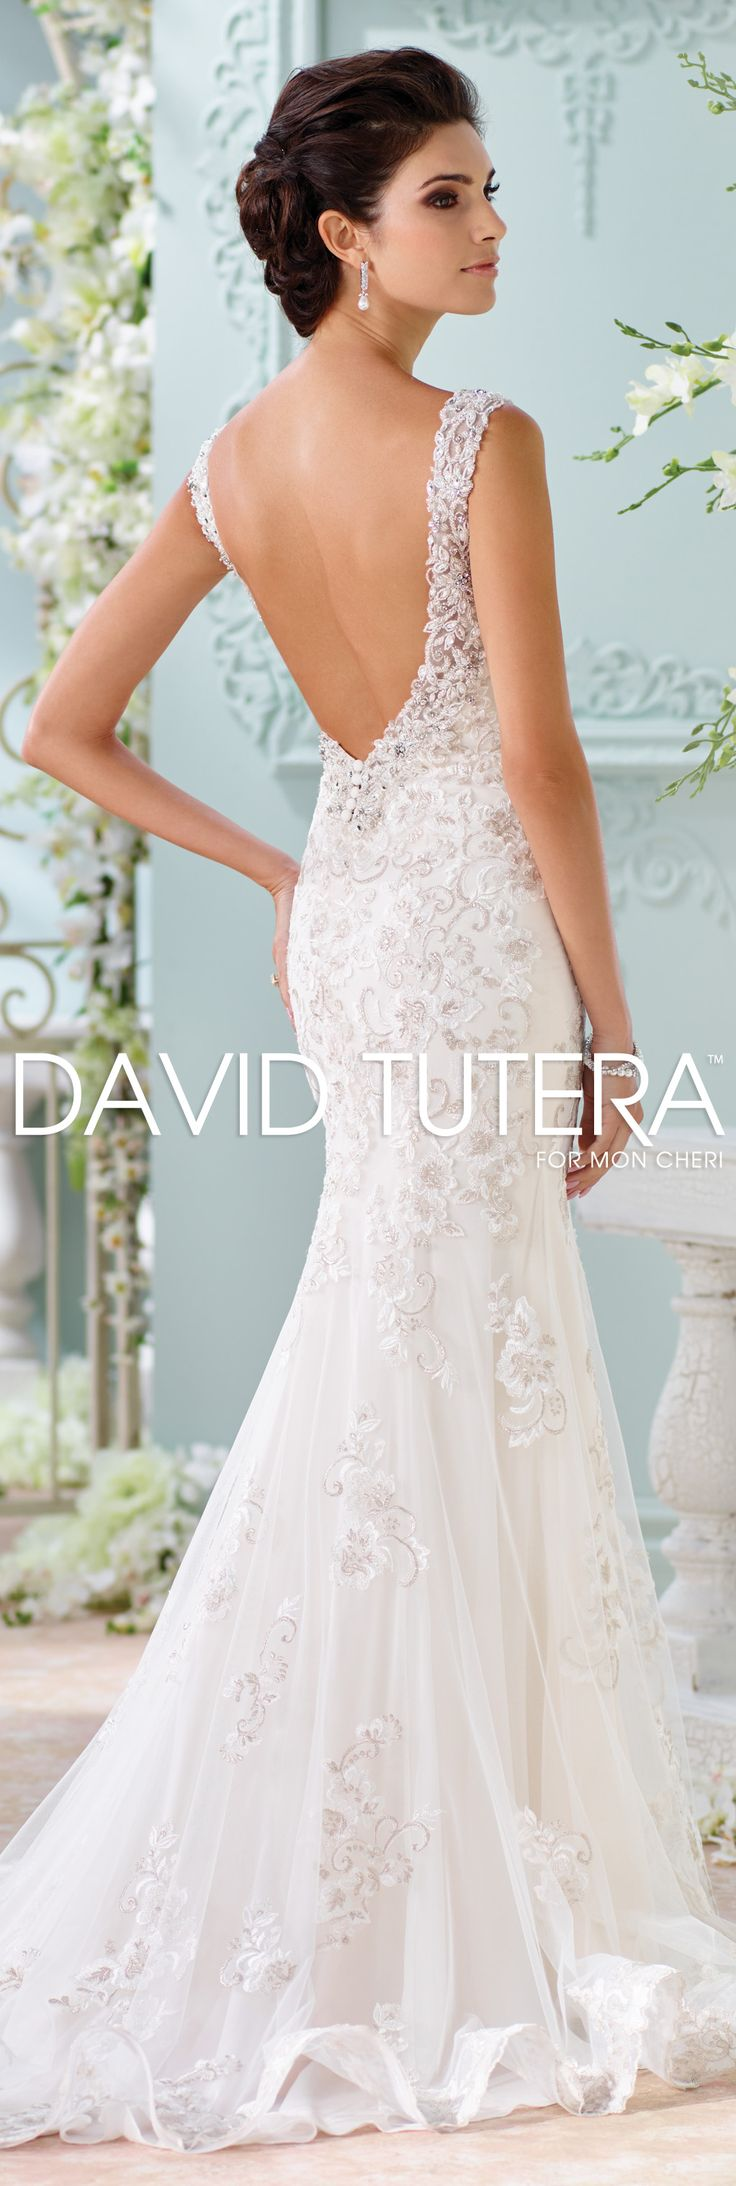 Best 25 david tutera ideas on pinterest sleeved wedding gowns the david tutera for mon cheri spring 2016 wedding gown collection style no 116220 junglespirit Choice Image